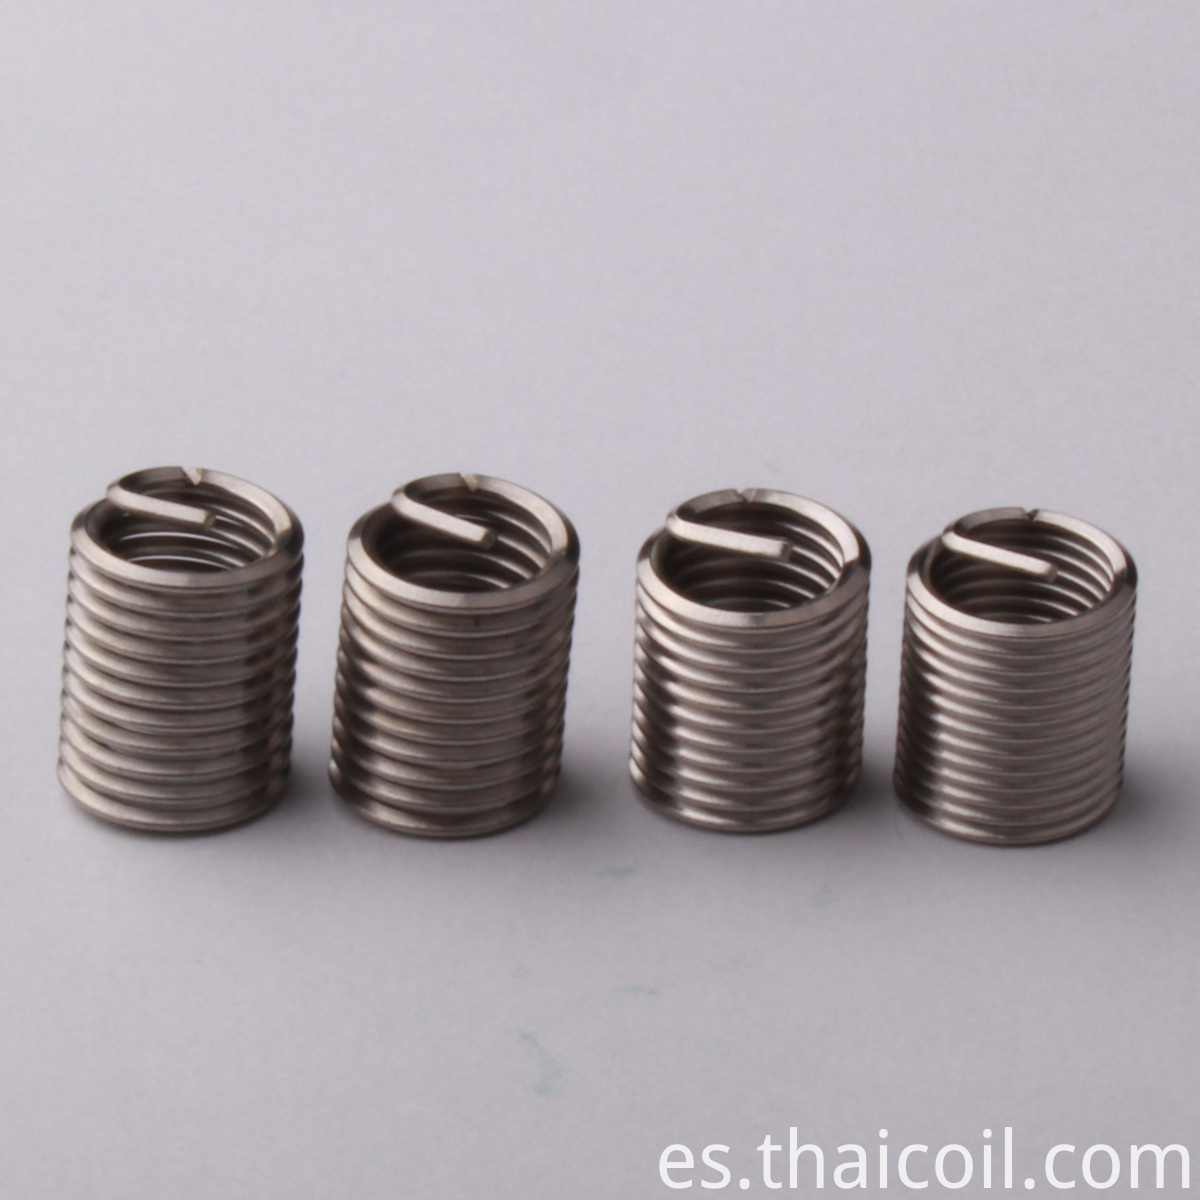 Inserts Threaded Repairing Metal